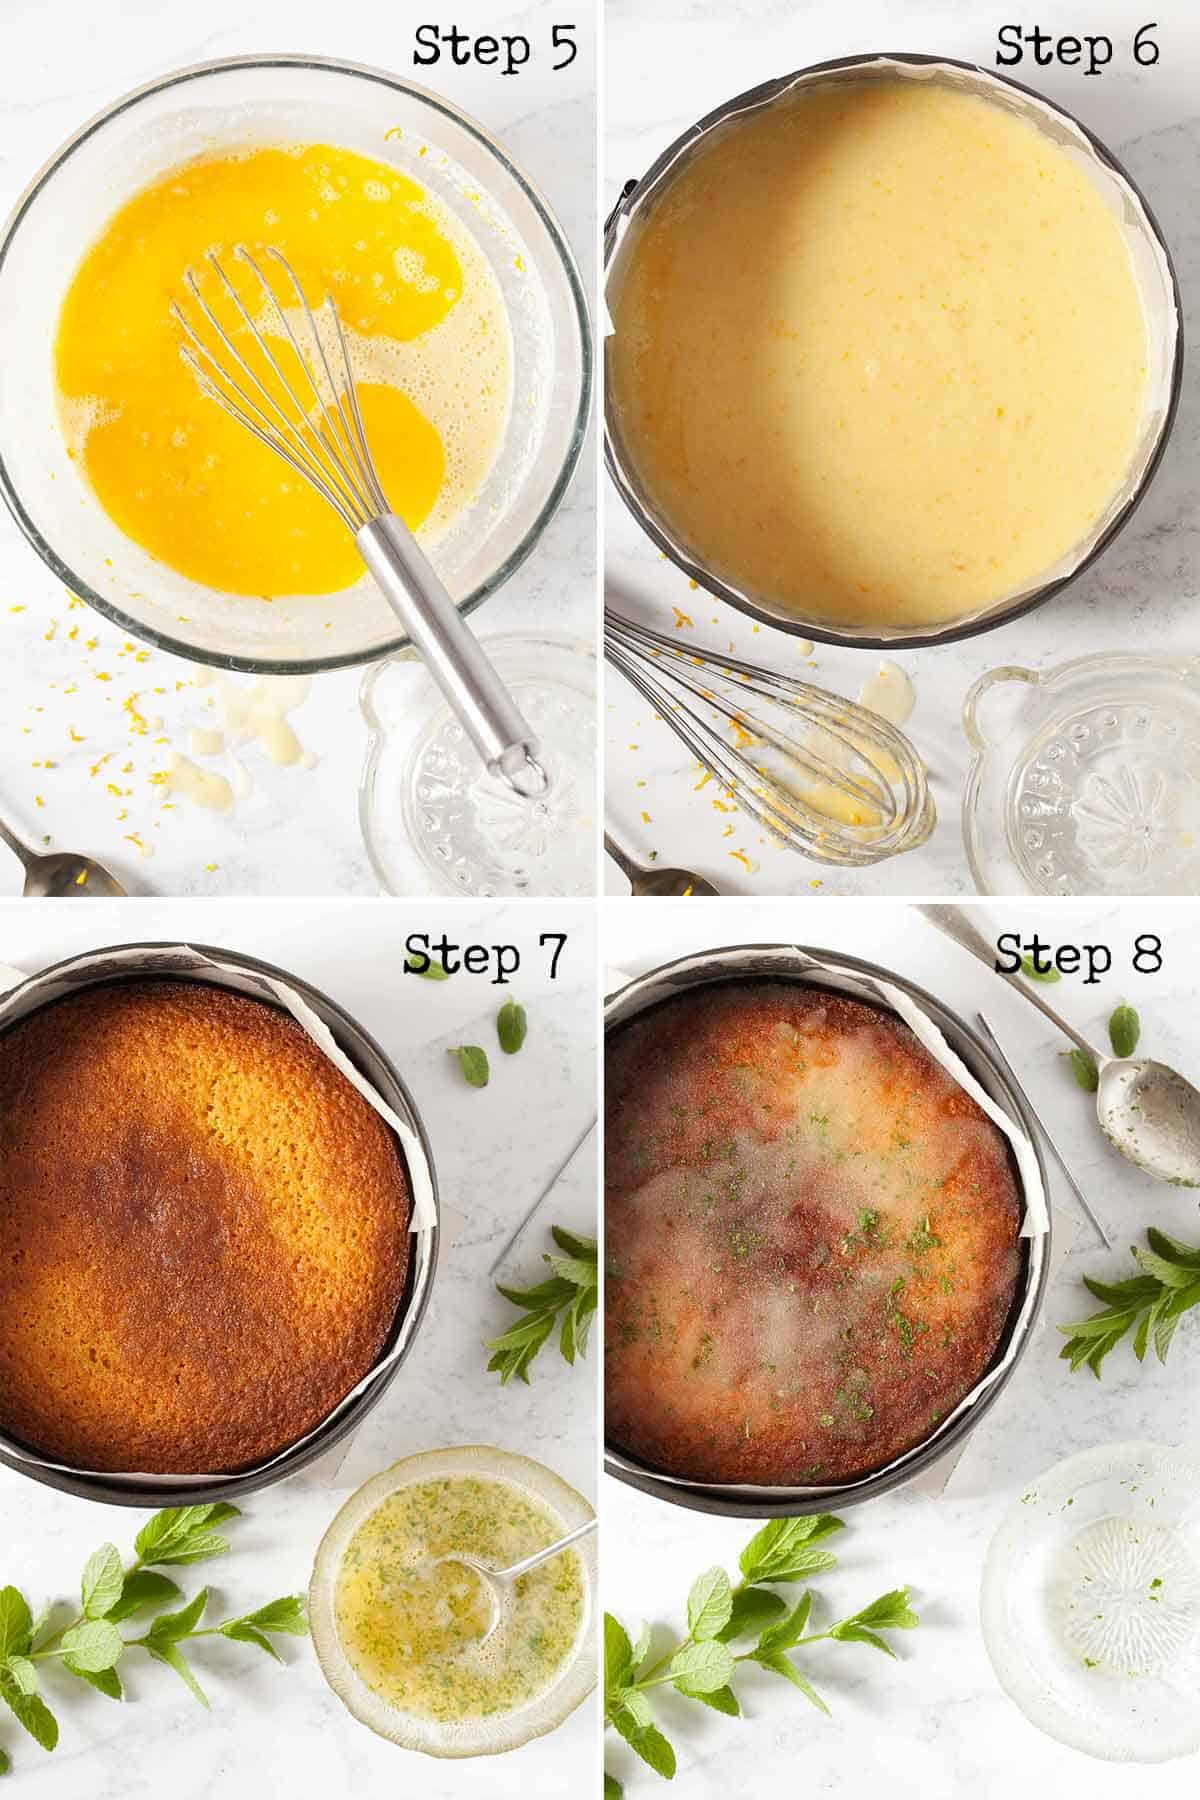 Collage of images showing a drizzle topping being added to a bake